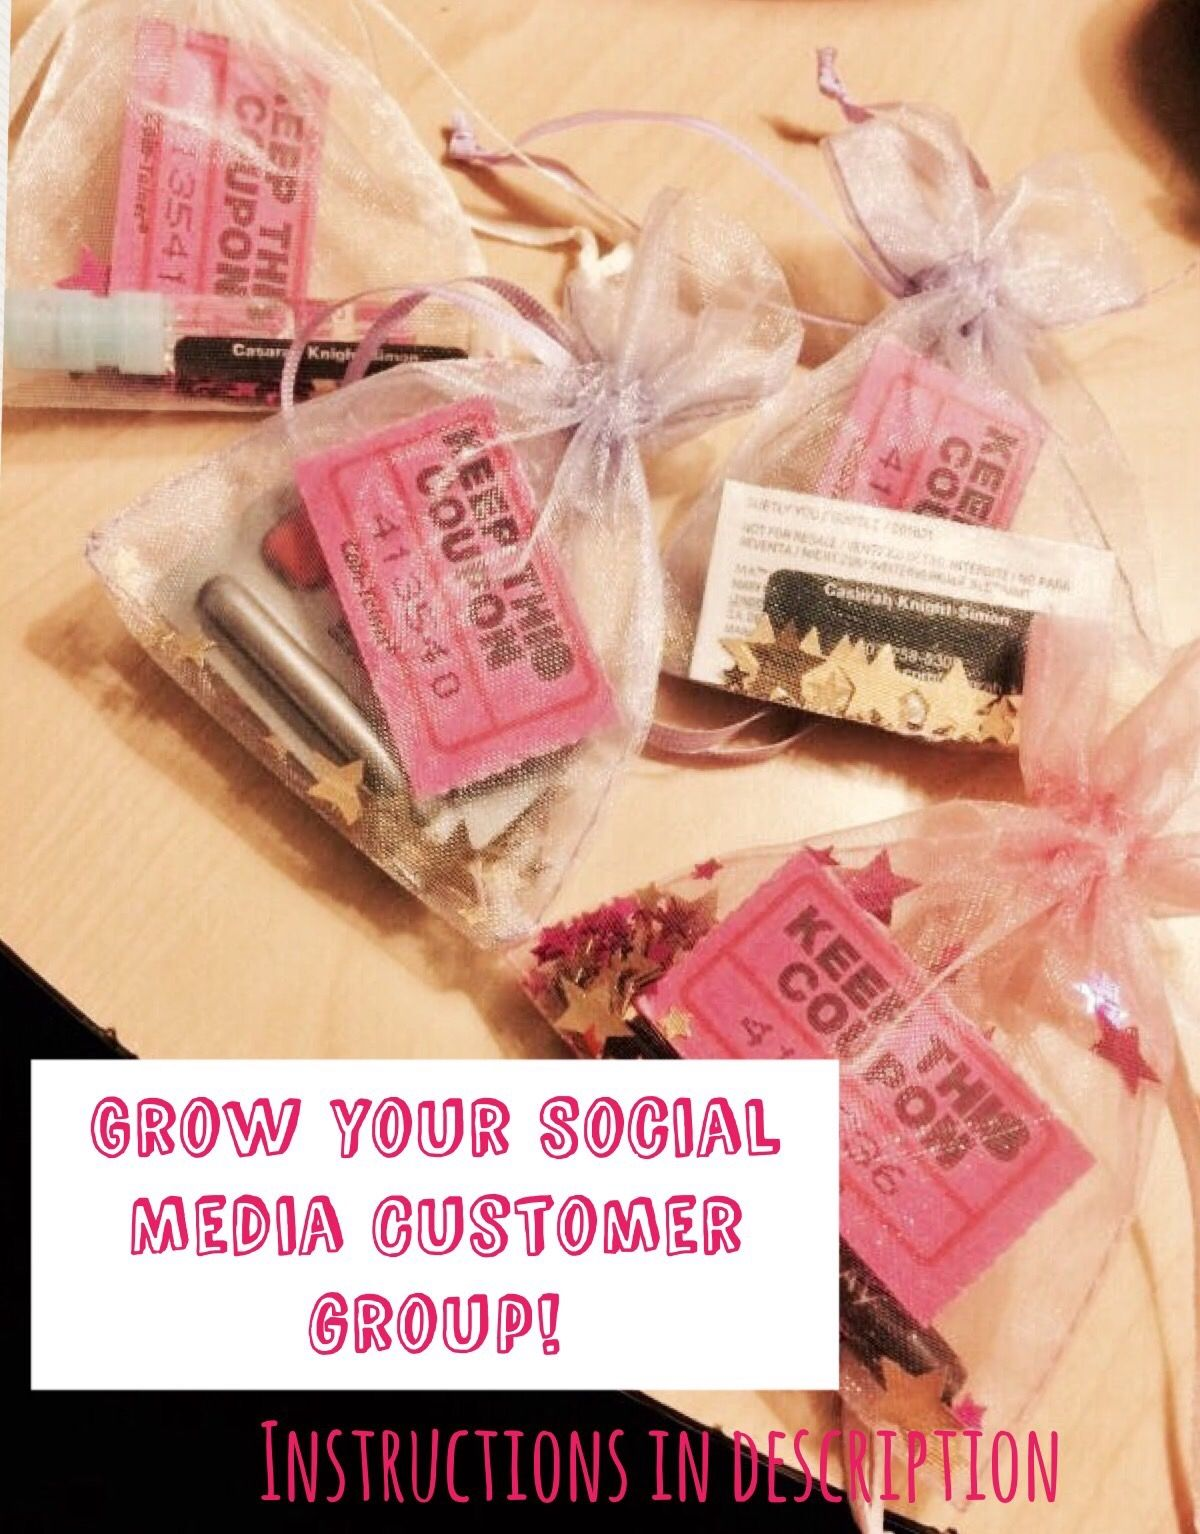 Great idea to add people to social media group after giving a sample ...